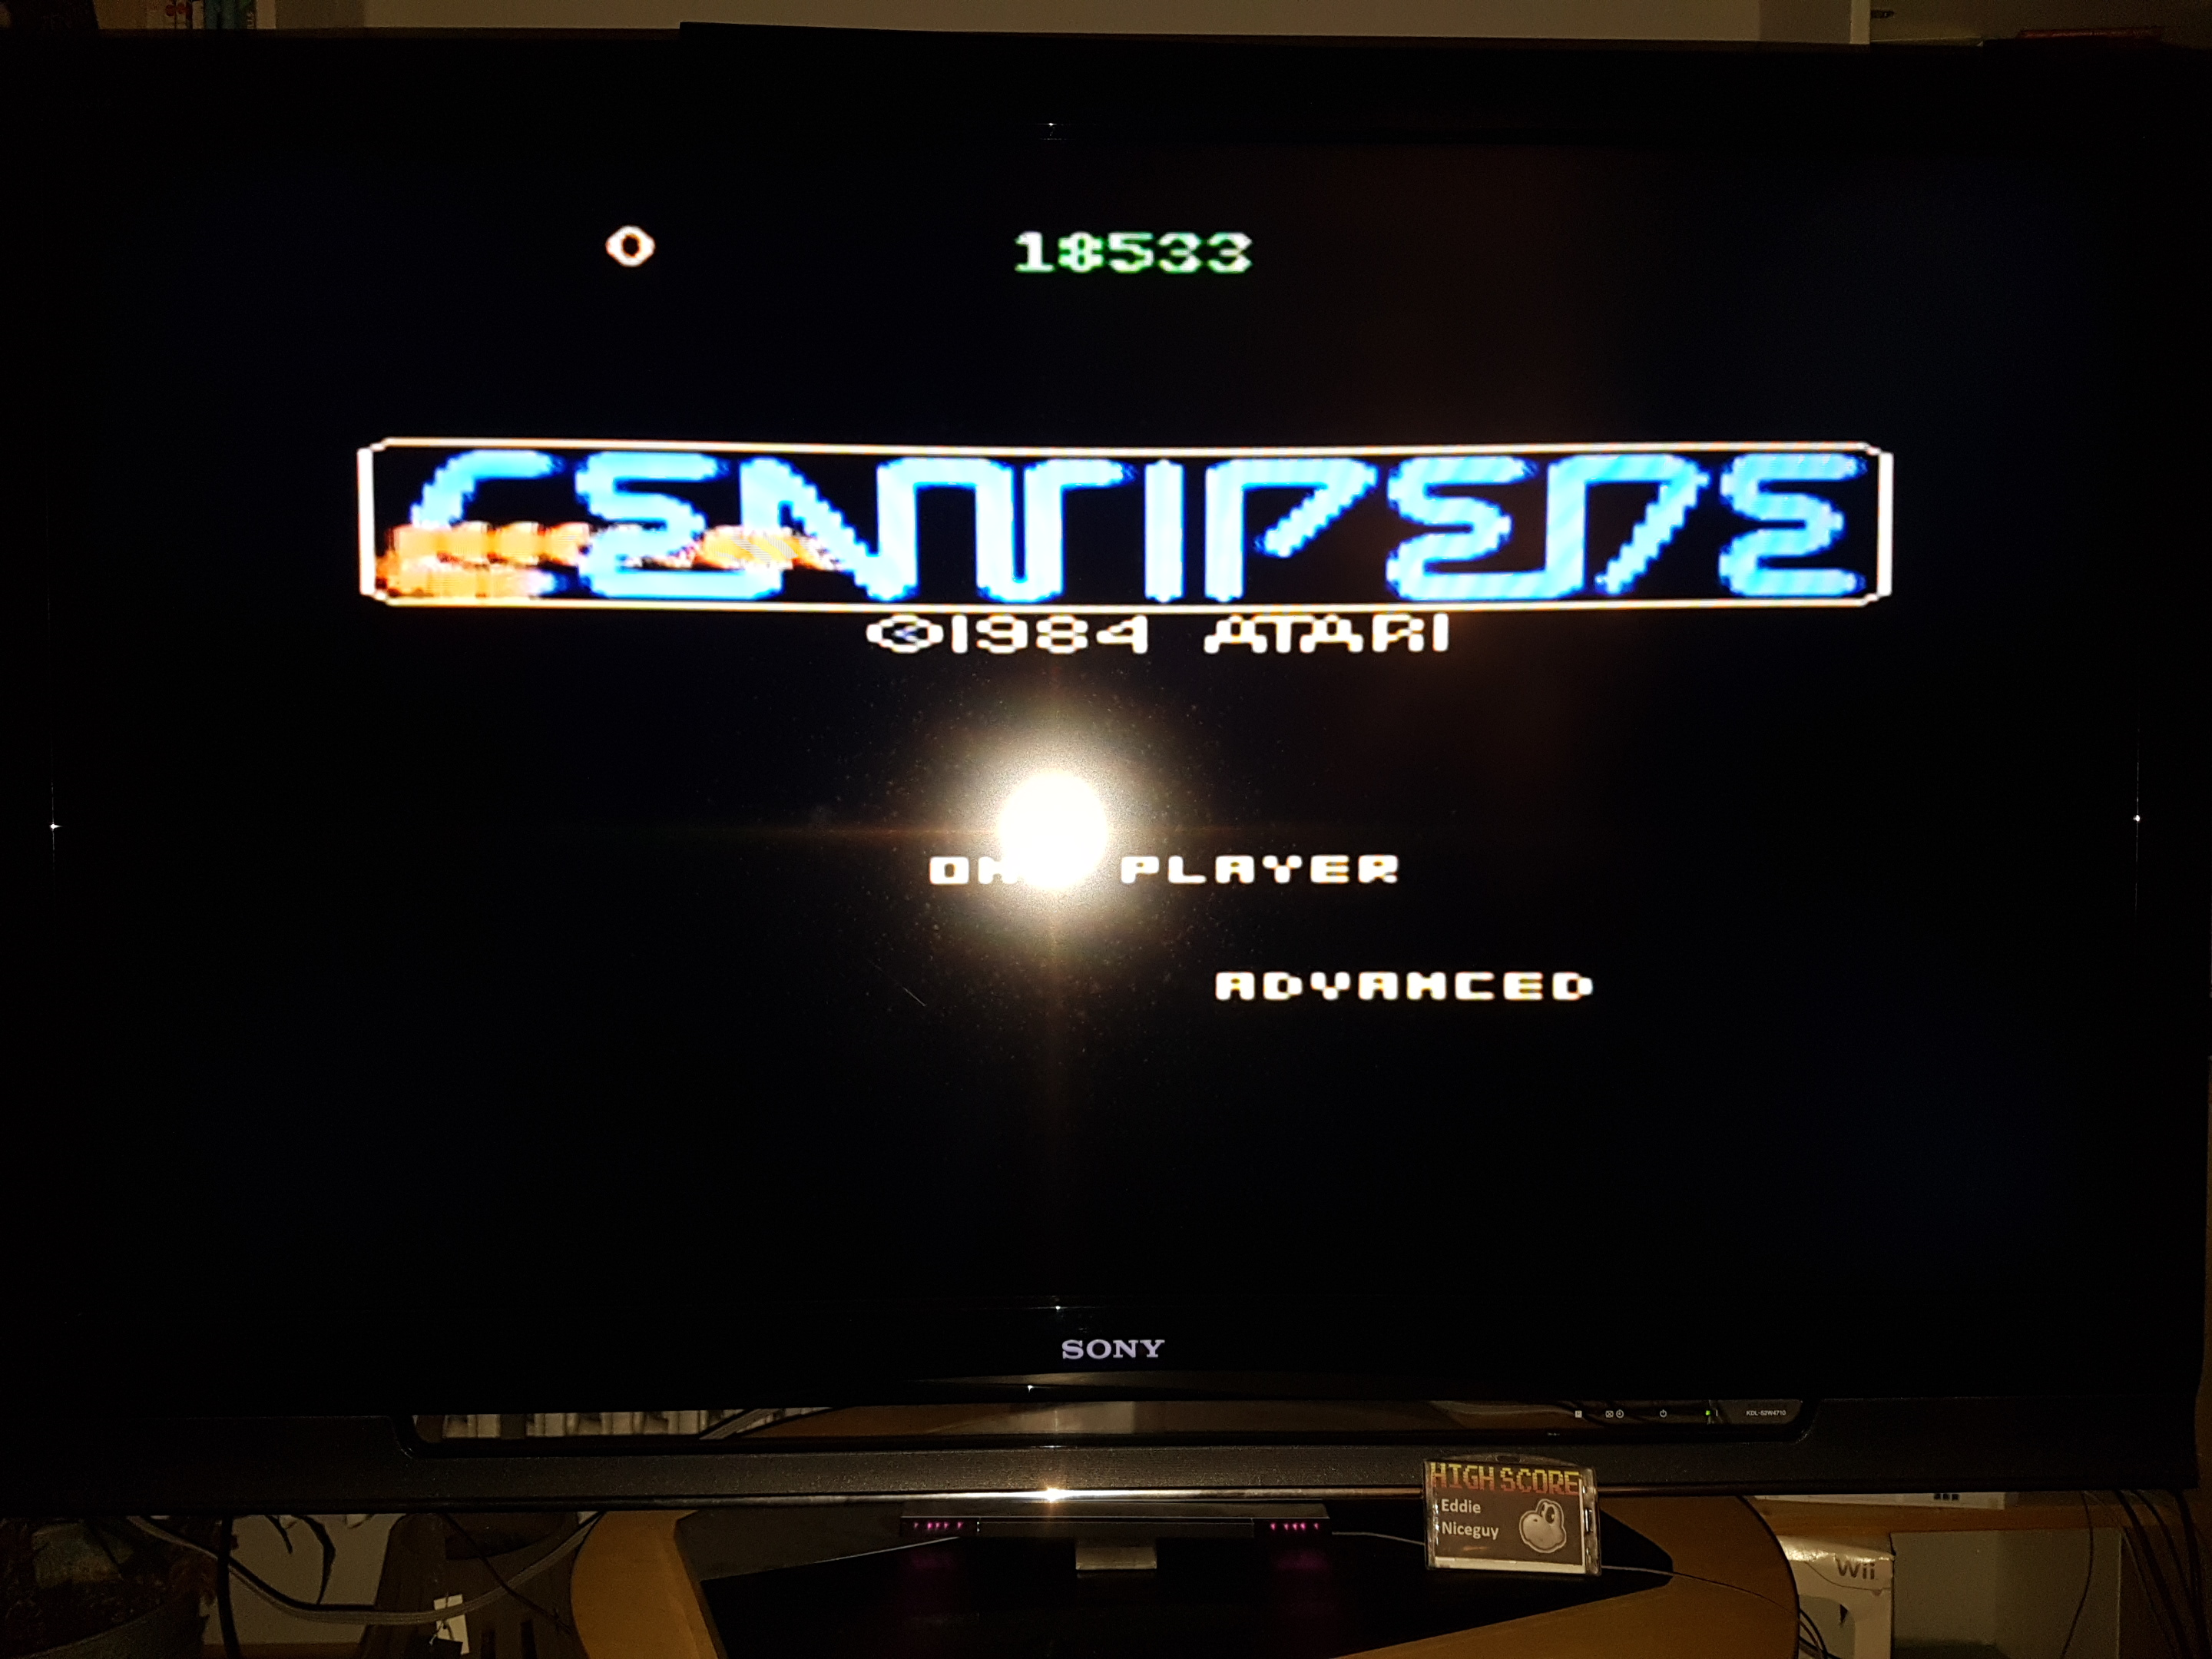 EddieNiceguy: Centipede: Advanced (Atari 7800 Emulated) 18,533 points on 2019-11-22 16:54:24